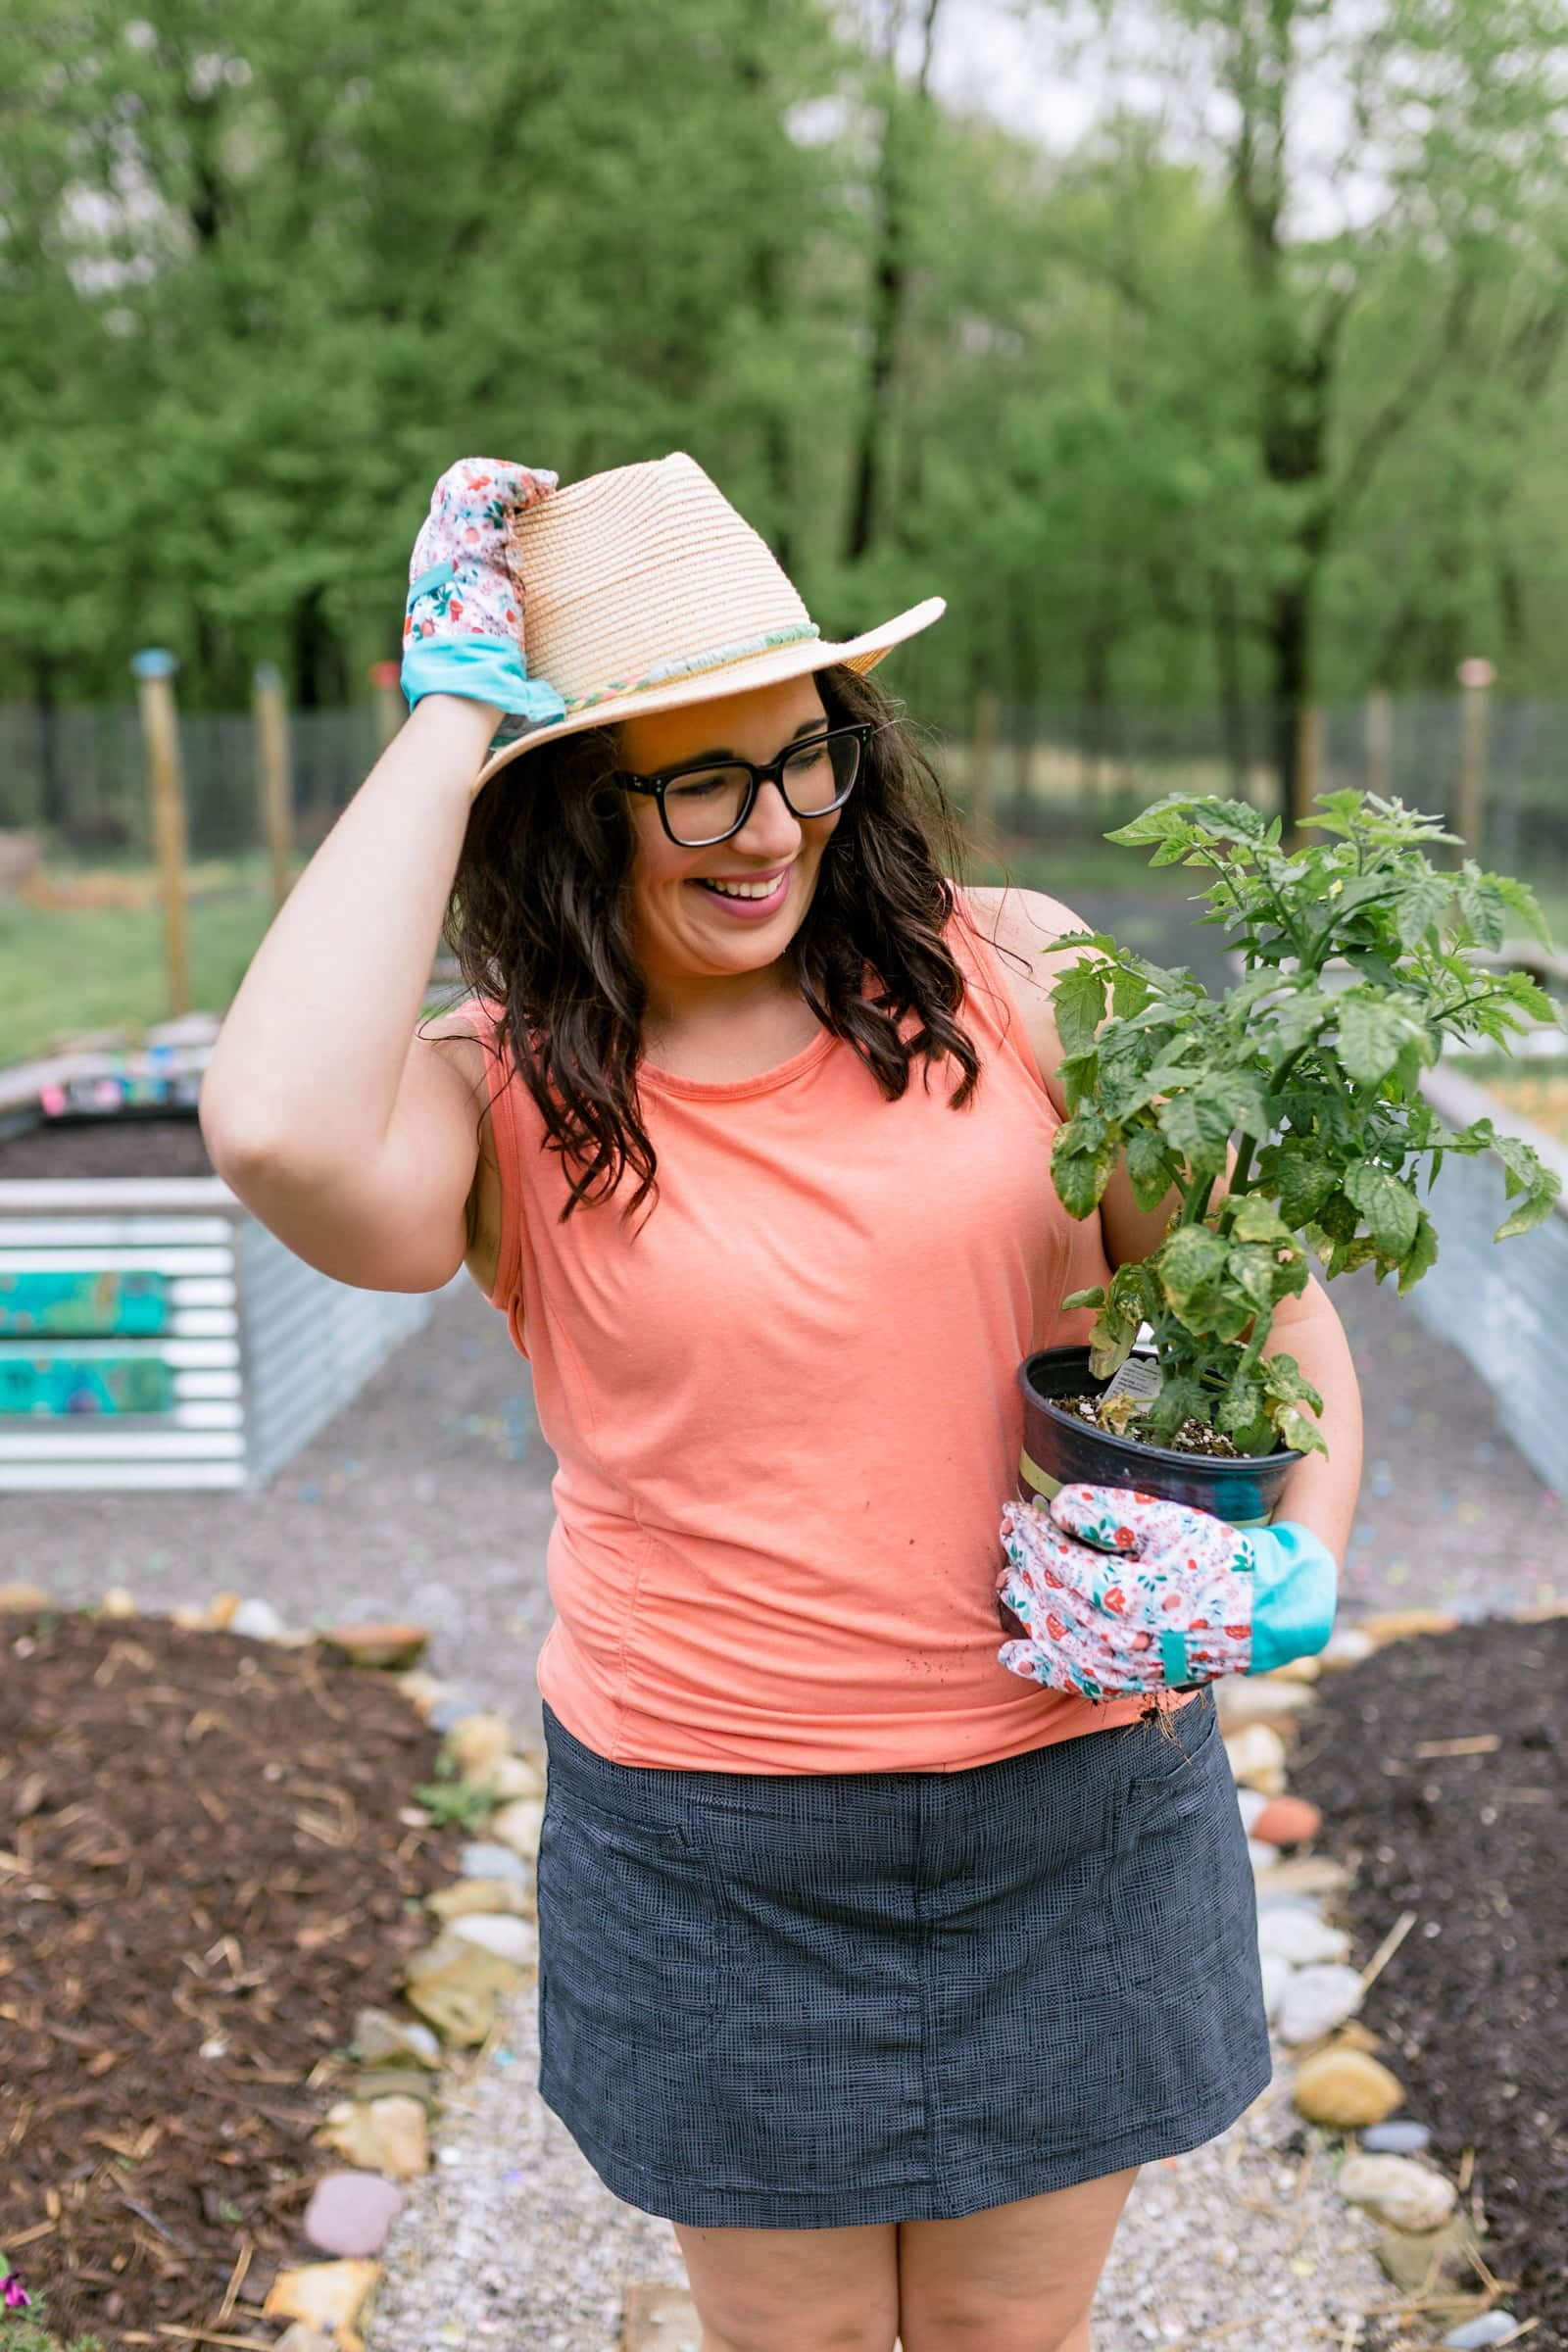 Organic Vegetable Gardening for Beginners: Woman in a coral shirt and sun hat smiling and holding a tomato plant ready for planting